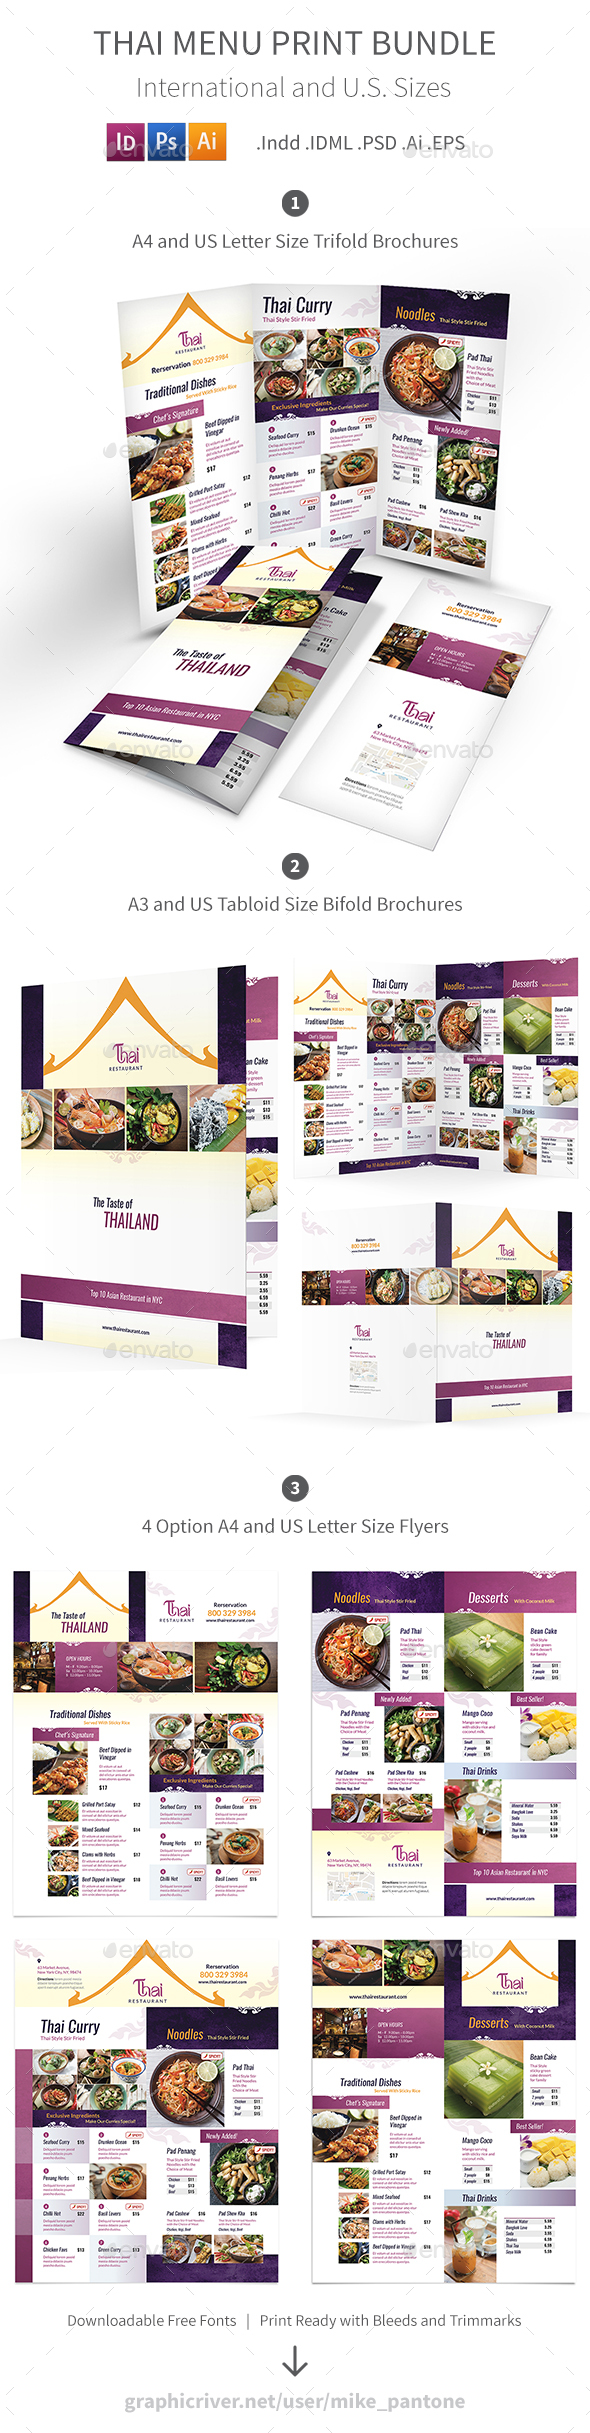 Thai Restaurant Menu Print Bundle 4 - Food Menus Print Templates